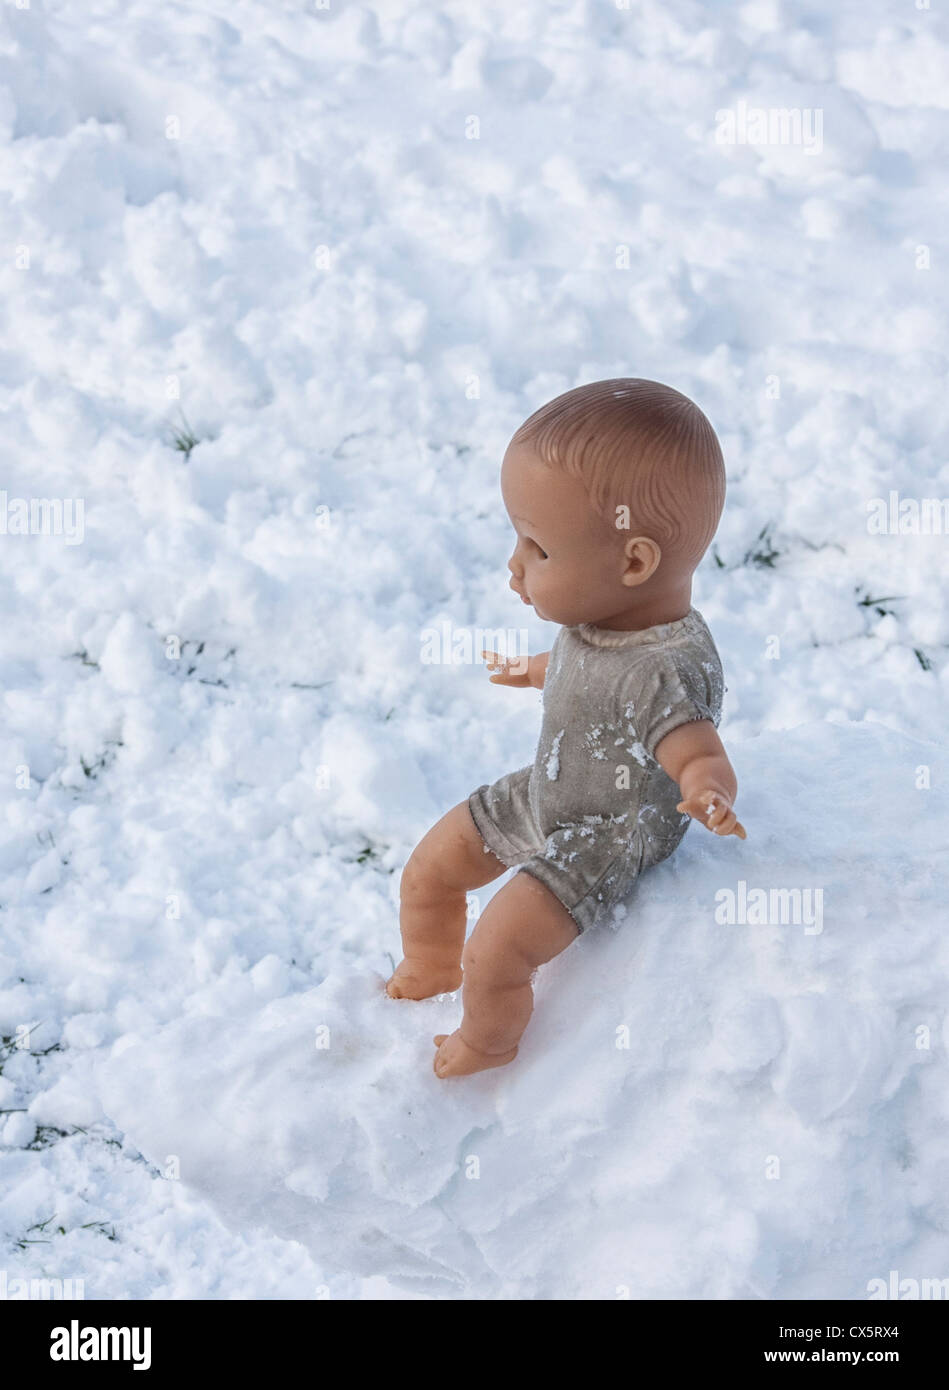 Lost or forgotten? A Doll in the Snow in a local park - Stock Image